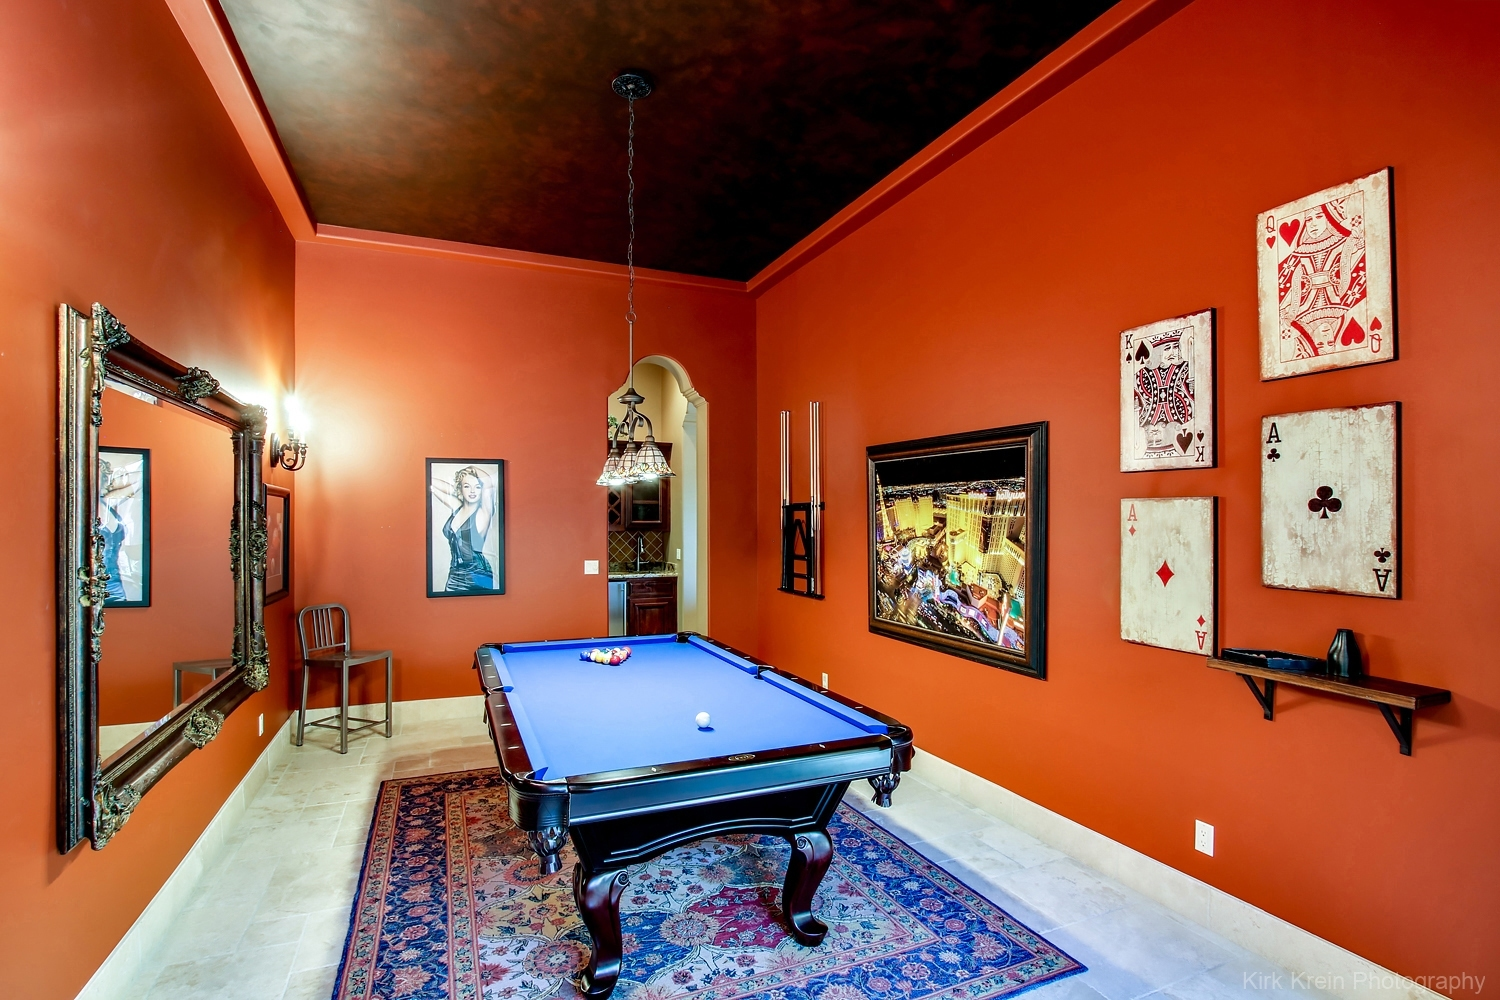 Billiard Room - Architectural and Commercial Real Estate Photography by photographer Kirk Krein, Phoenix, AZ & East Valley